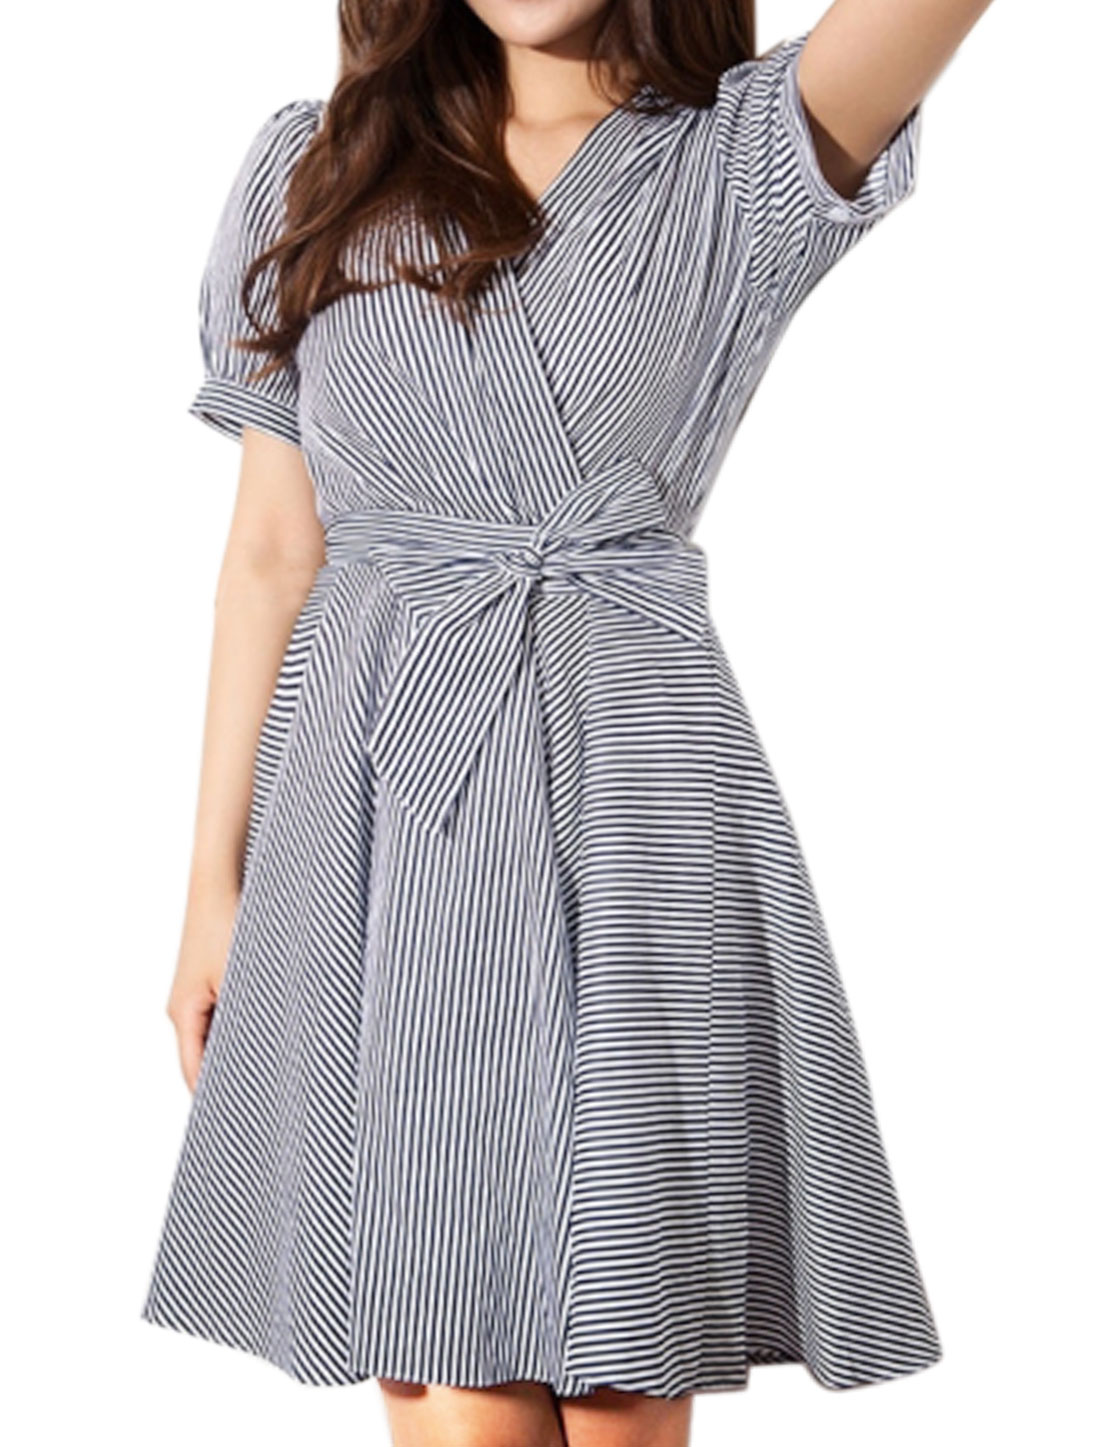 Ladies Crossover V Neck Short Sleeves Stripes Swing Dress w Belt Blue White S